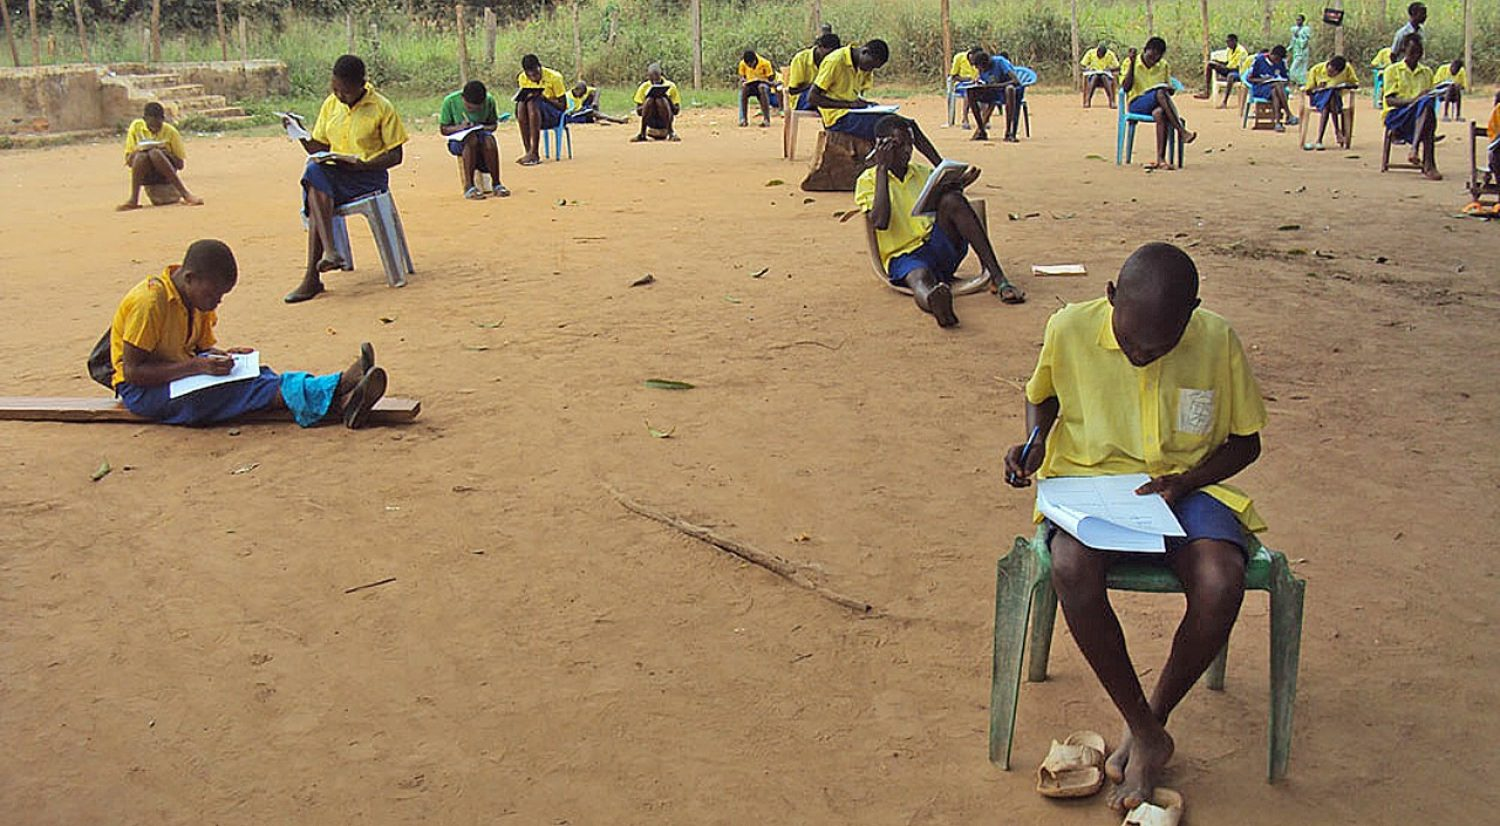 Education in emergency – Students study after class in Yambio, South Sudan, where outbreaks of violence have deterred many from enrolling in school.